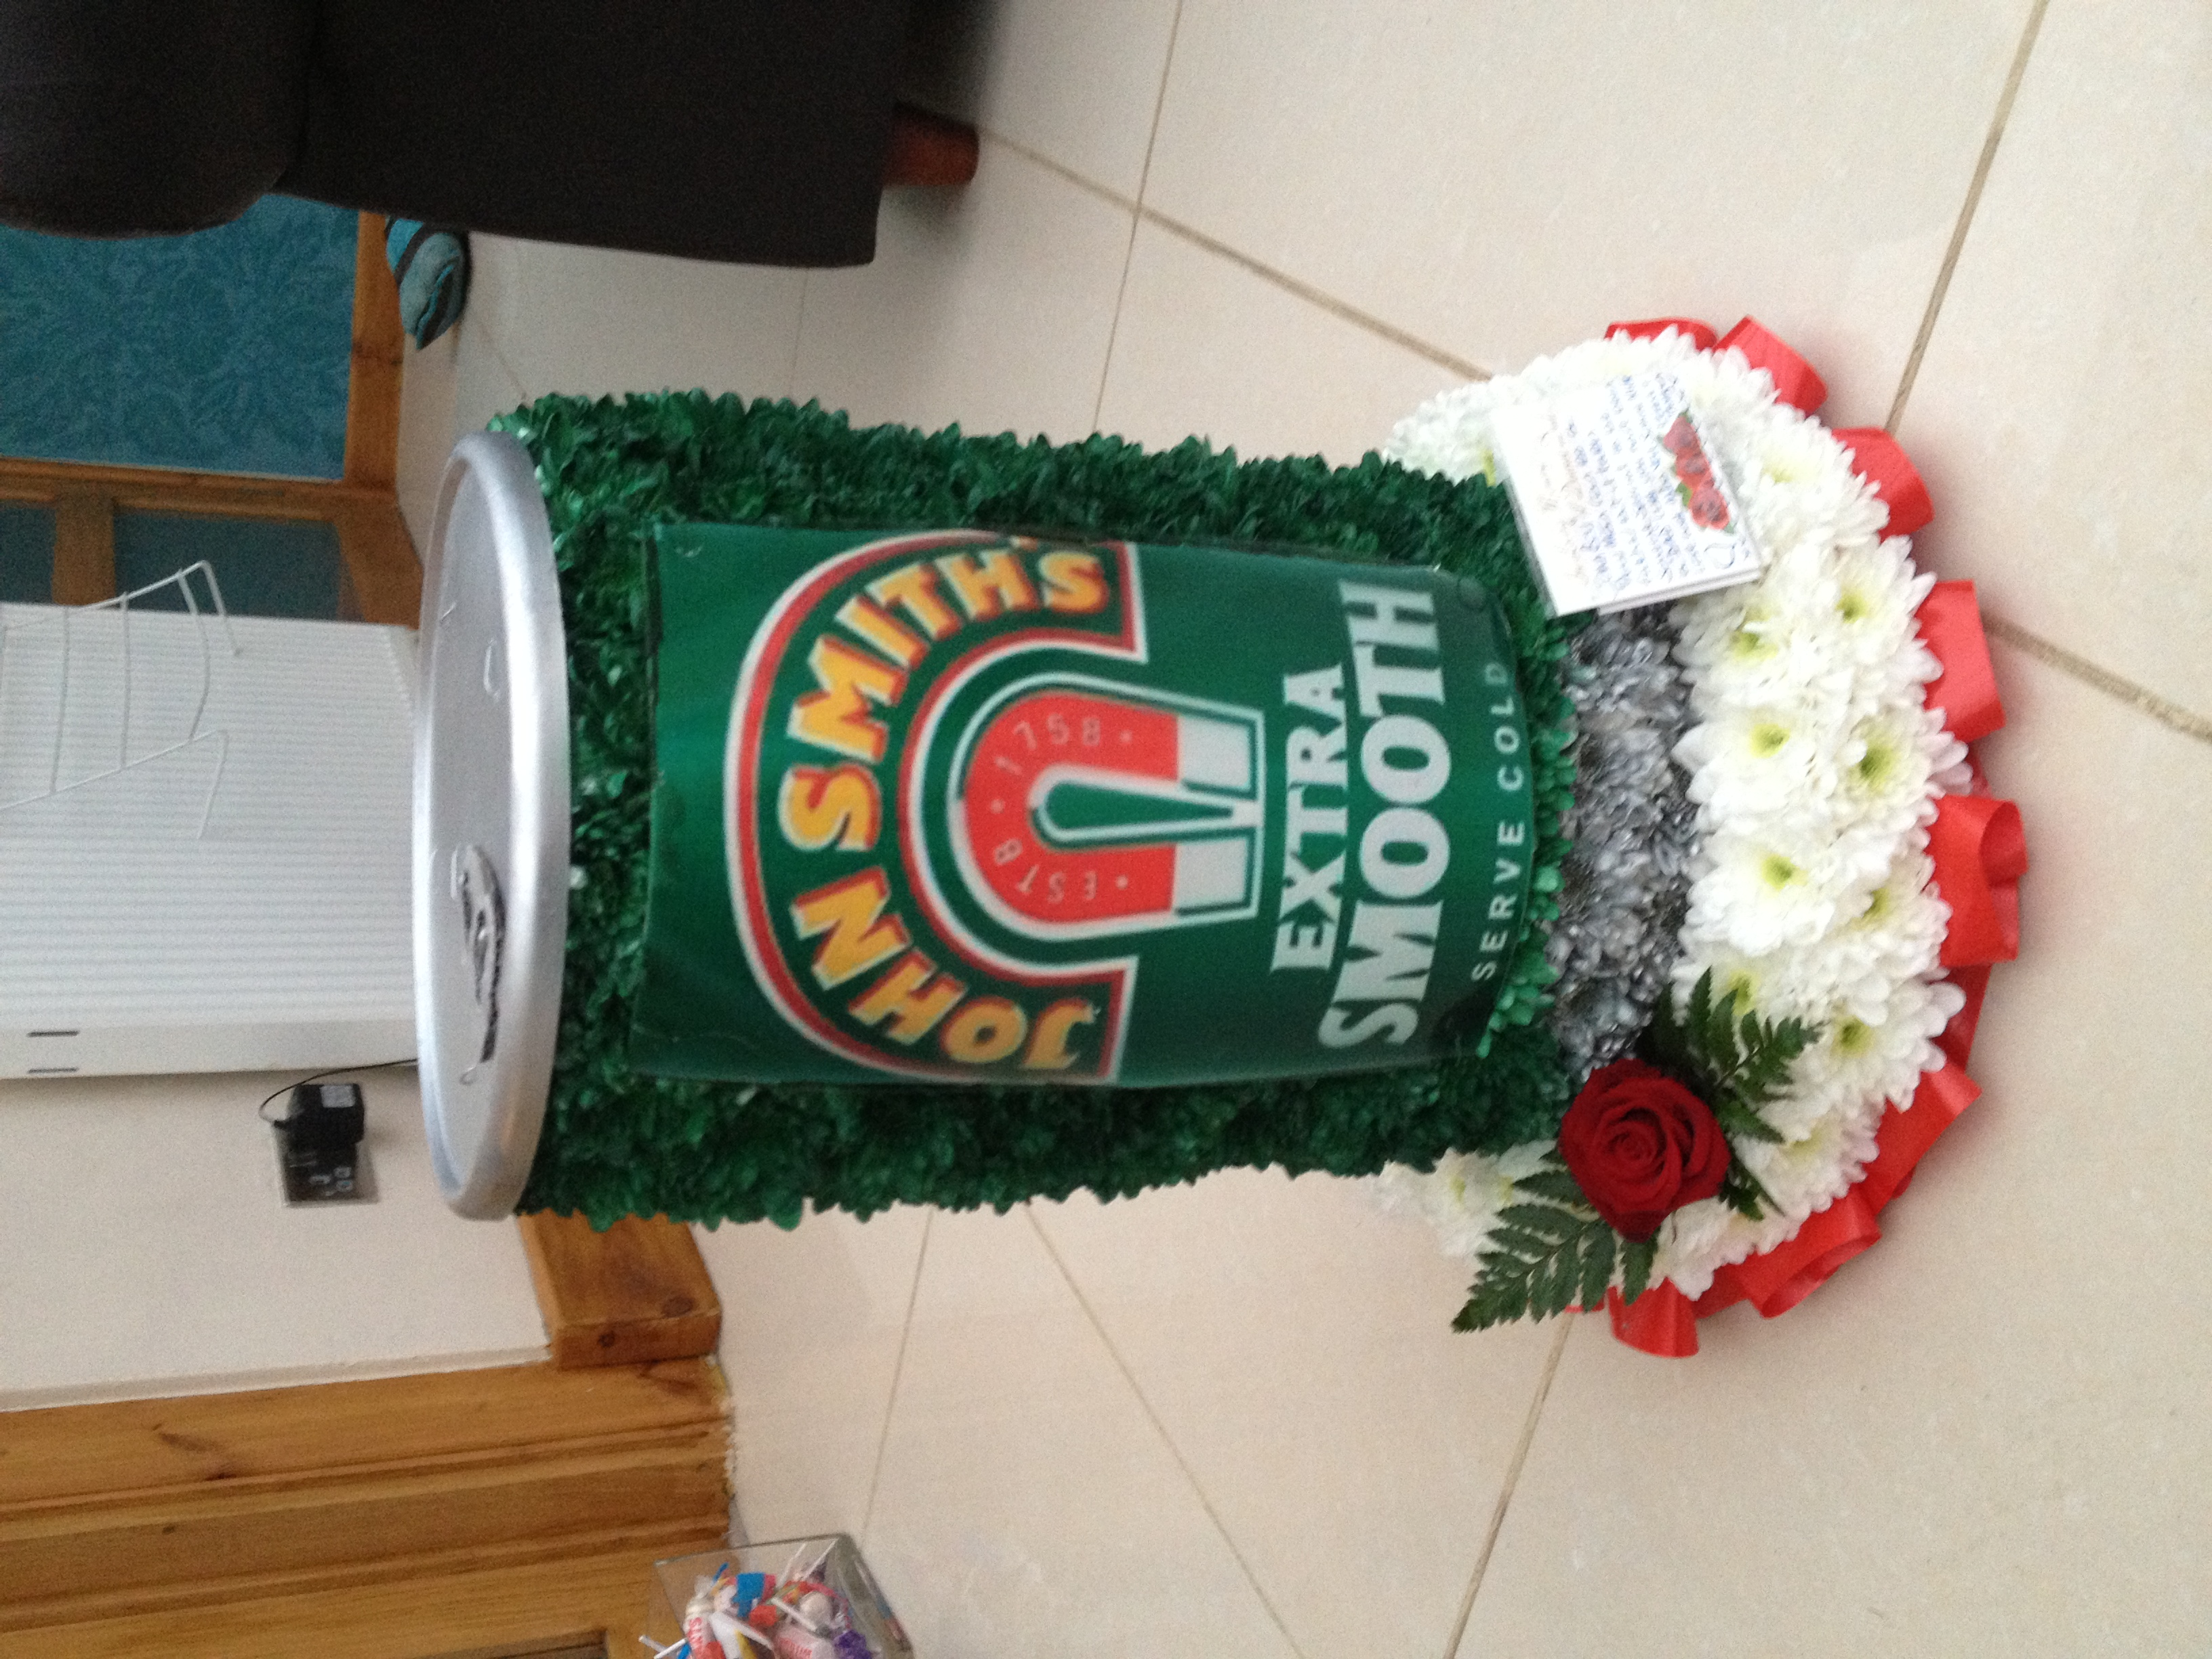 Special funeral tributes archives john smiths beer can 10000 izmirmasajfo